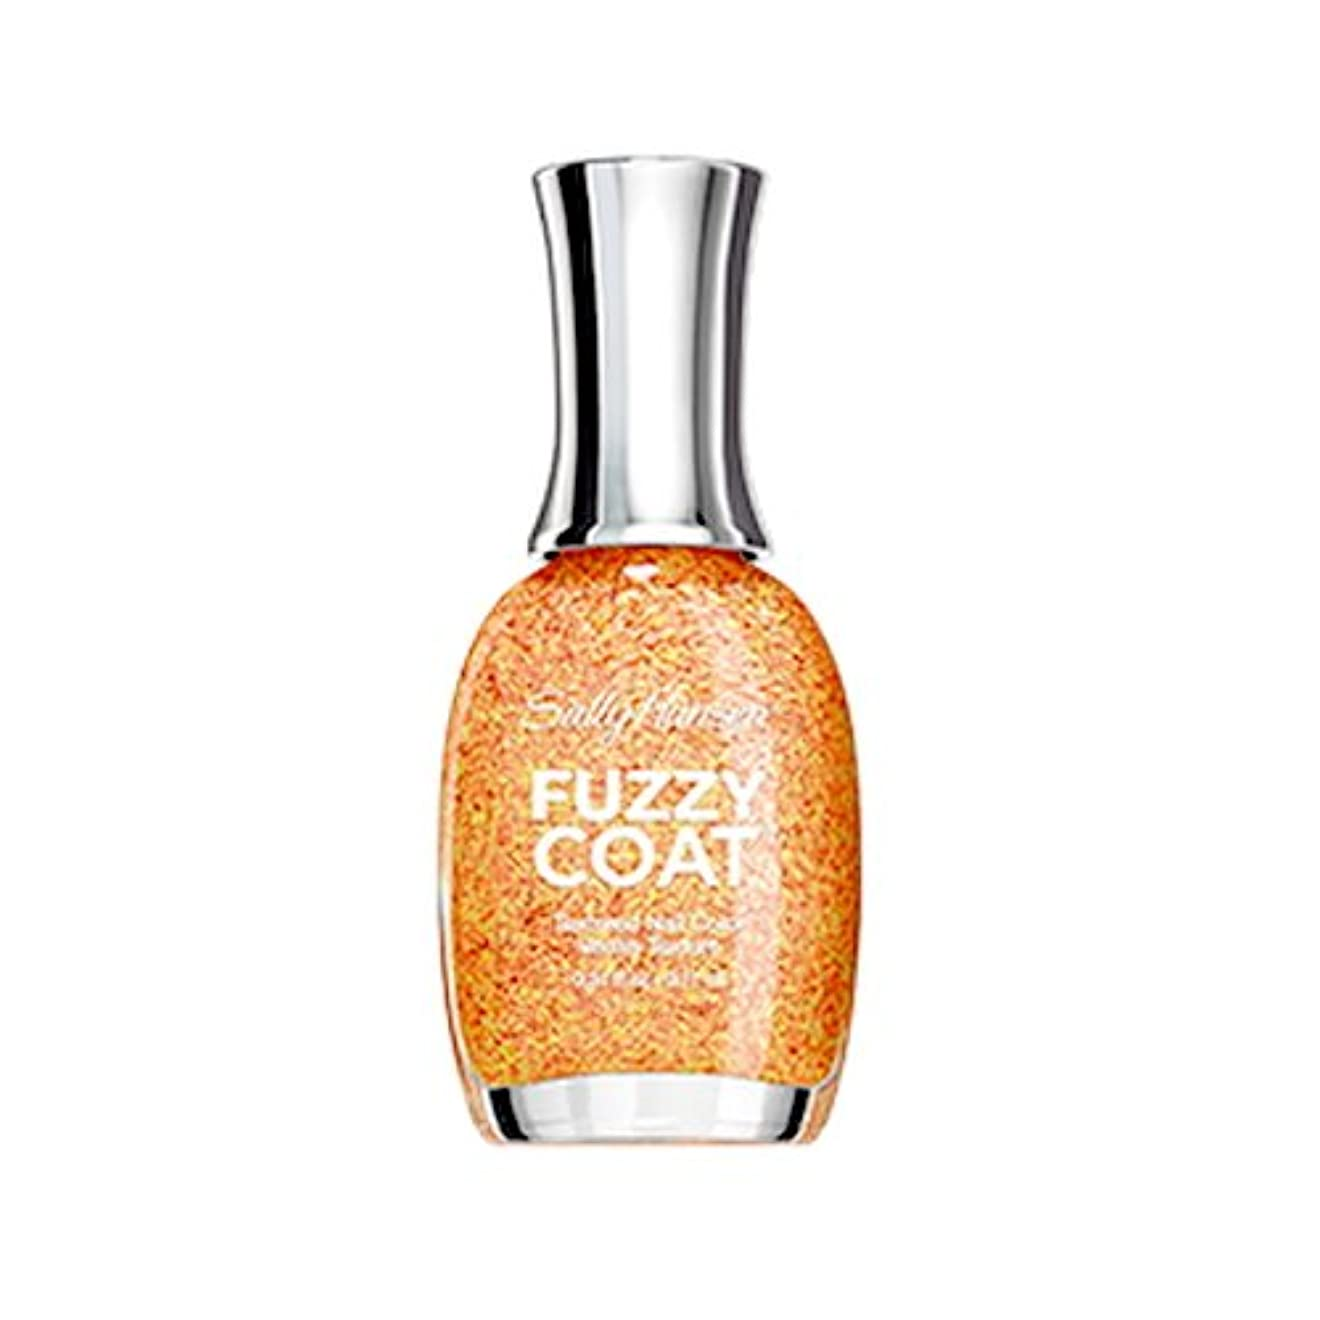 センチメンタルシートケージSALLY HANSEN Fuzzy Coat Special Effect Textured Nail Color - Peach Fuzz (並行輸入品)